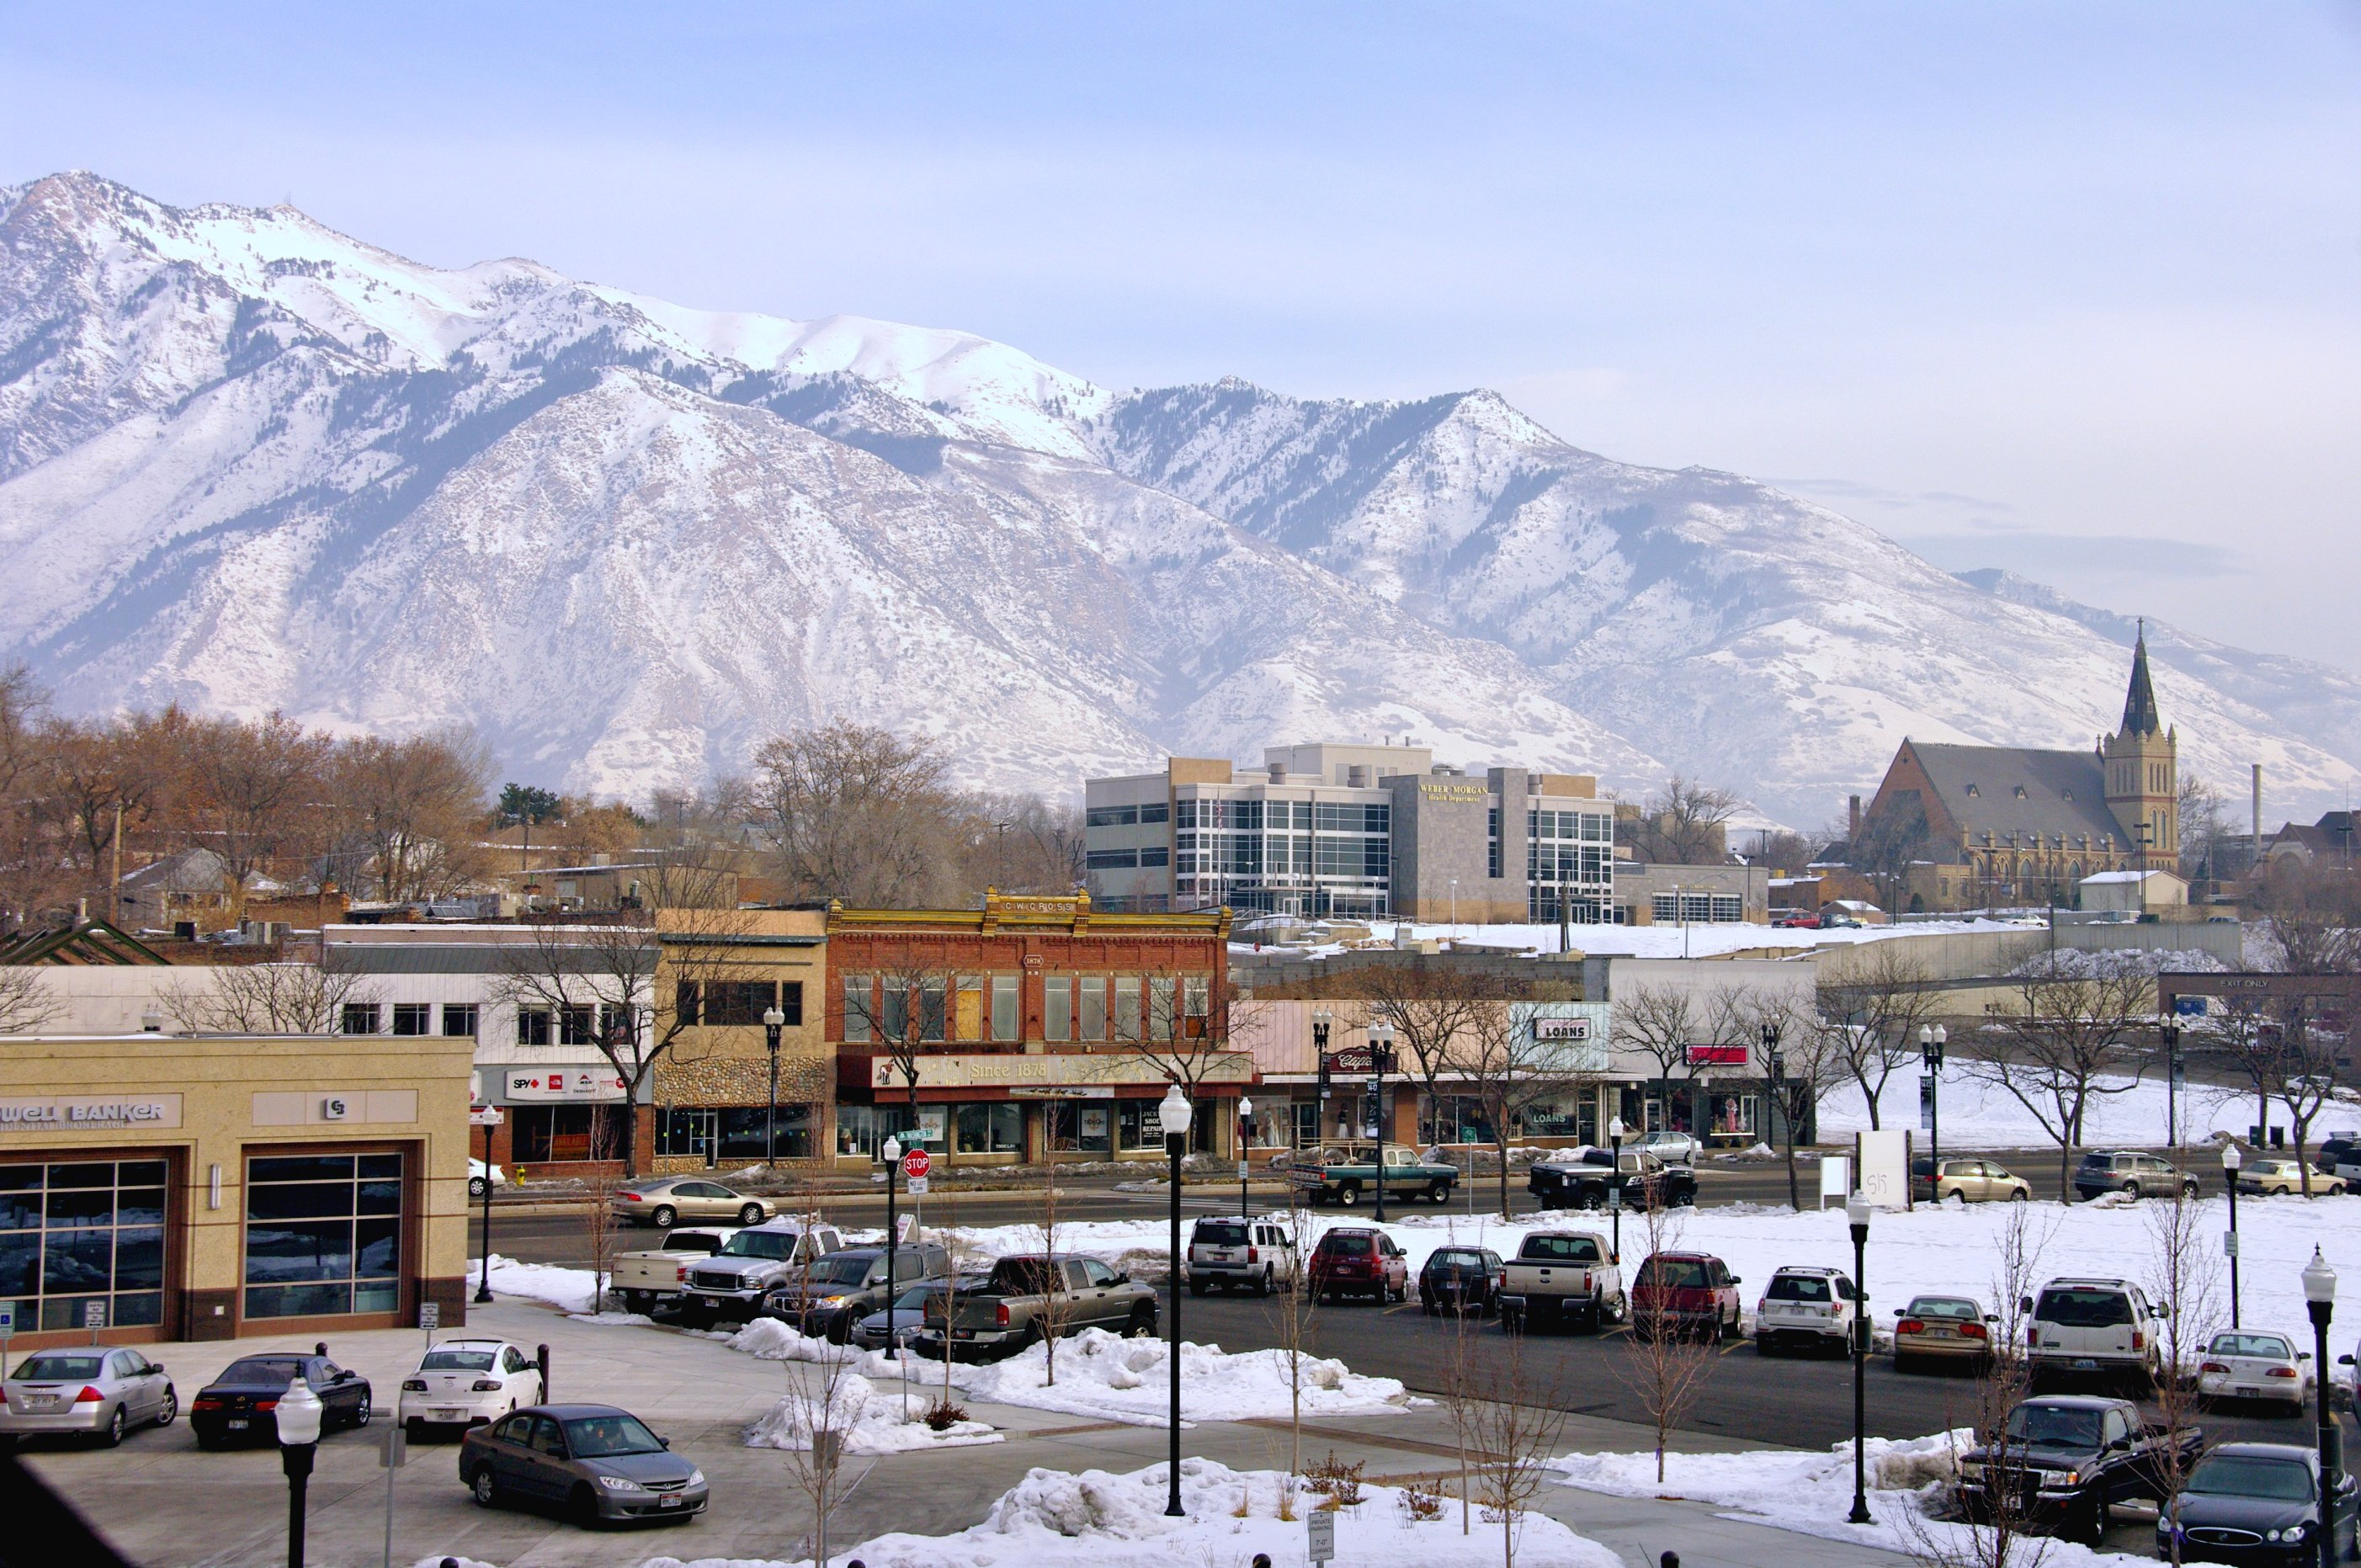 The city was named after fearless fur-trader and adventurer, Peter Skene Ogden, who explored the untamed area in the s. Since then, Ogden has seen poverty and prosperity, conflict and celebration.